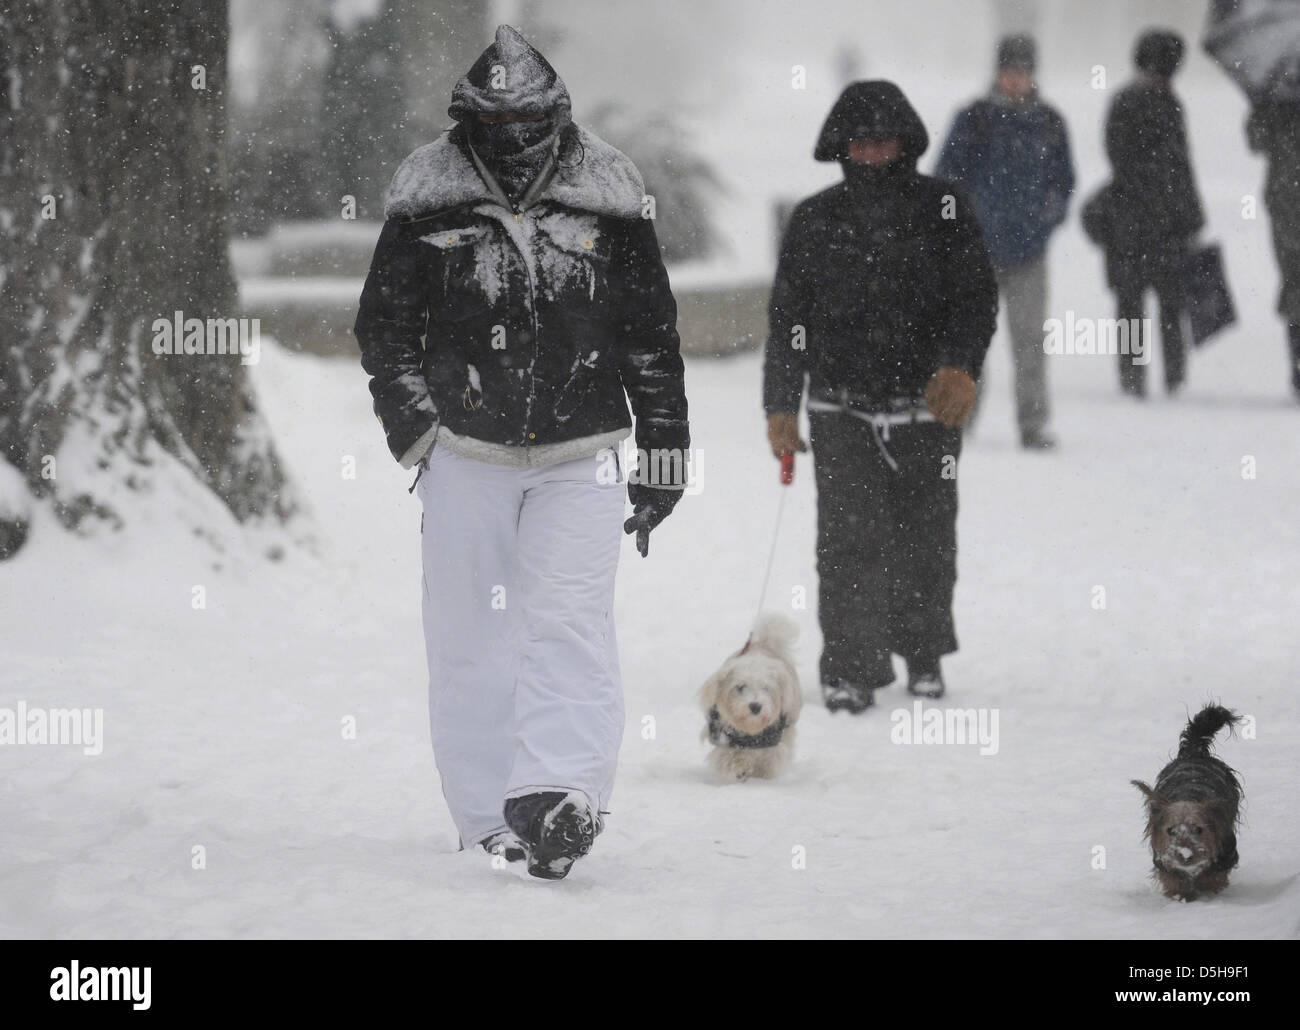 Barzubehör Hamburg Brave Dogs High Resolution Stock Photography And Images - Alamy